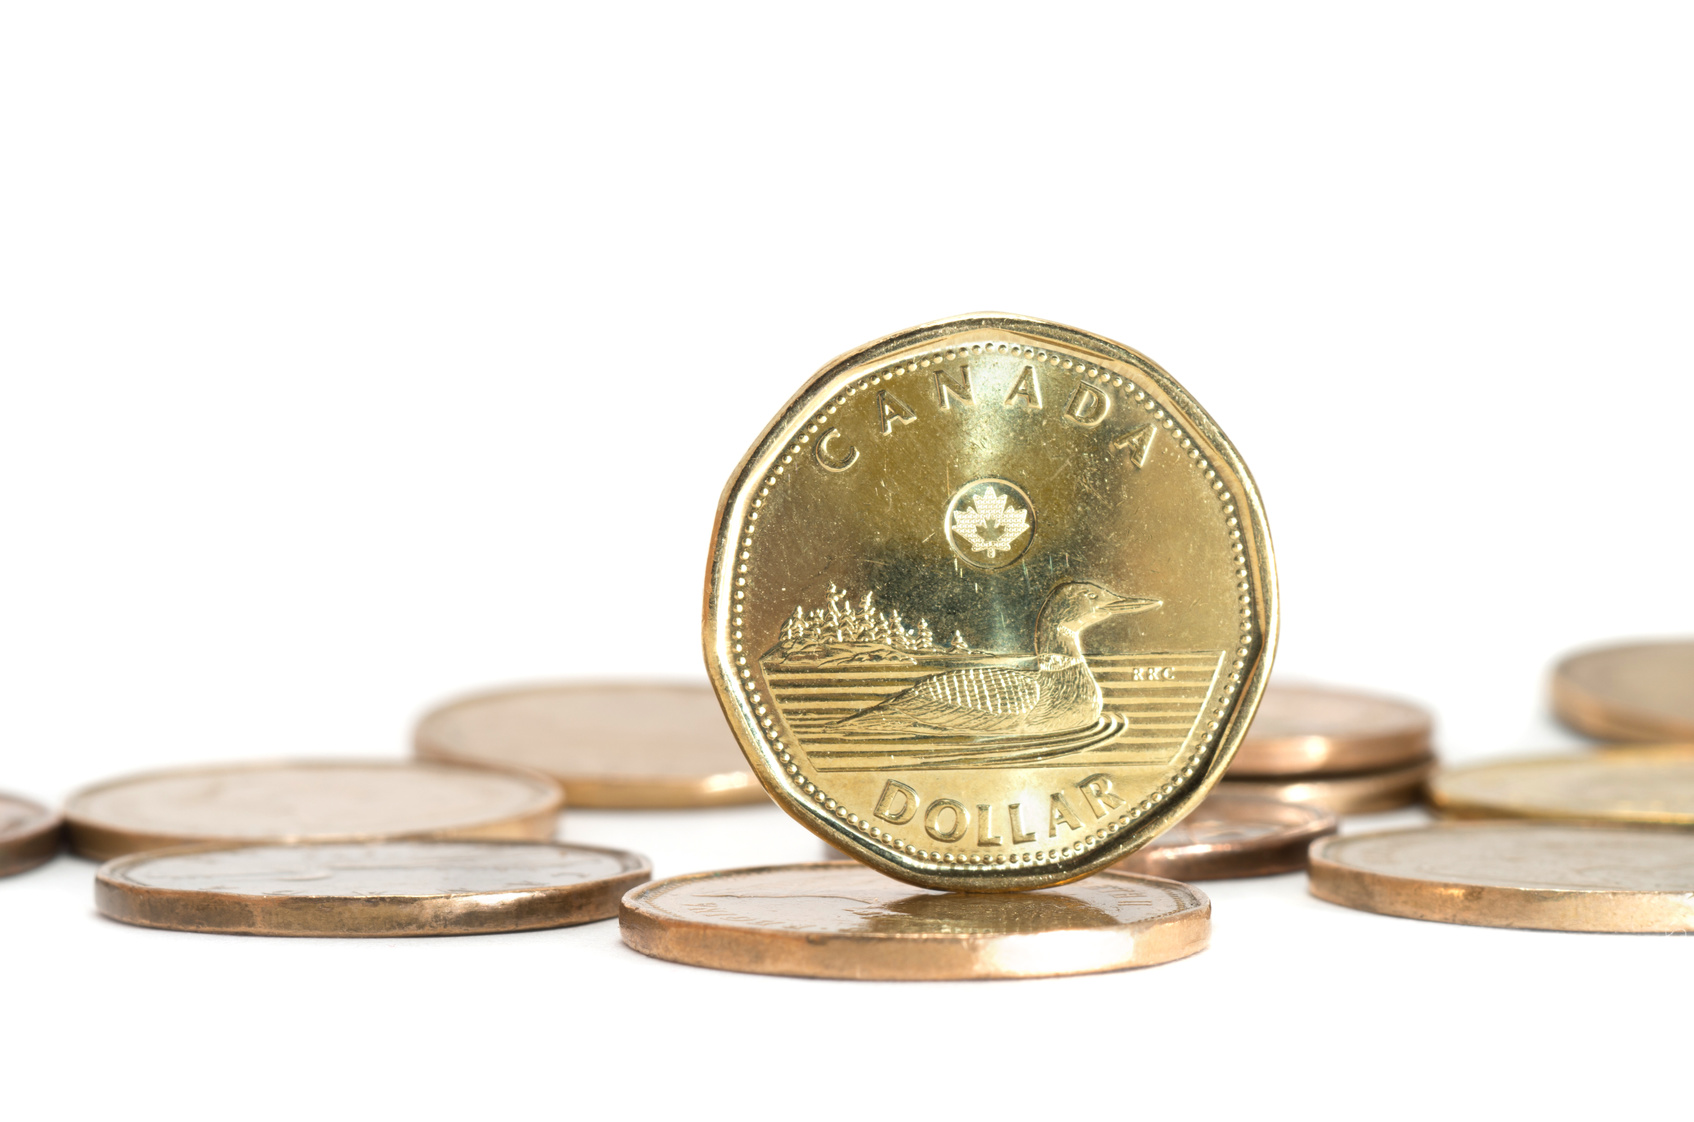 The challenges and opportunities of the Canadian dollar's decline